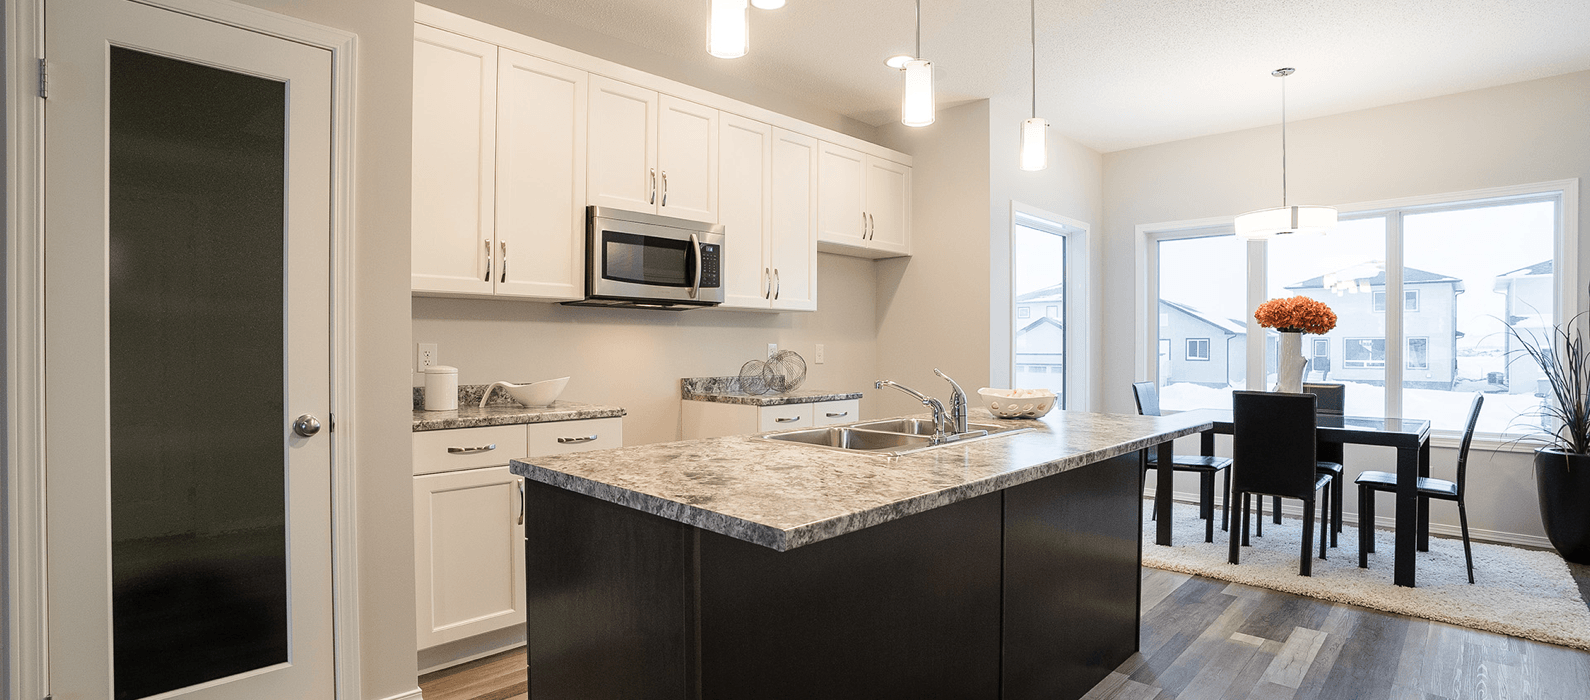 Move In Ready Home: 39 Silver Creek Boulevard Featured Image